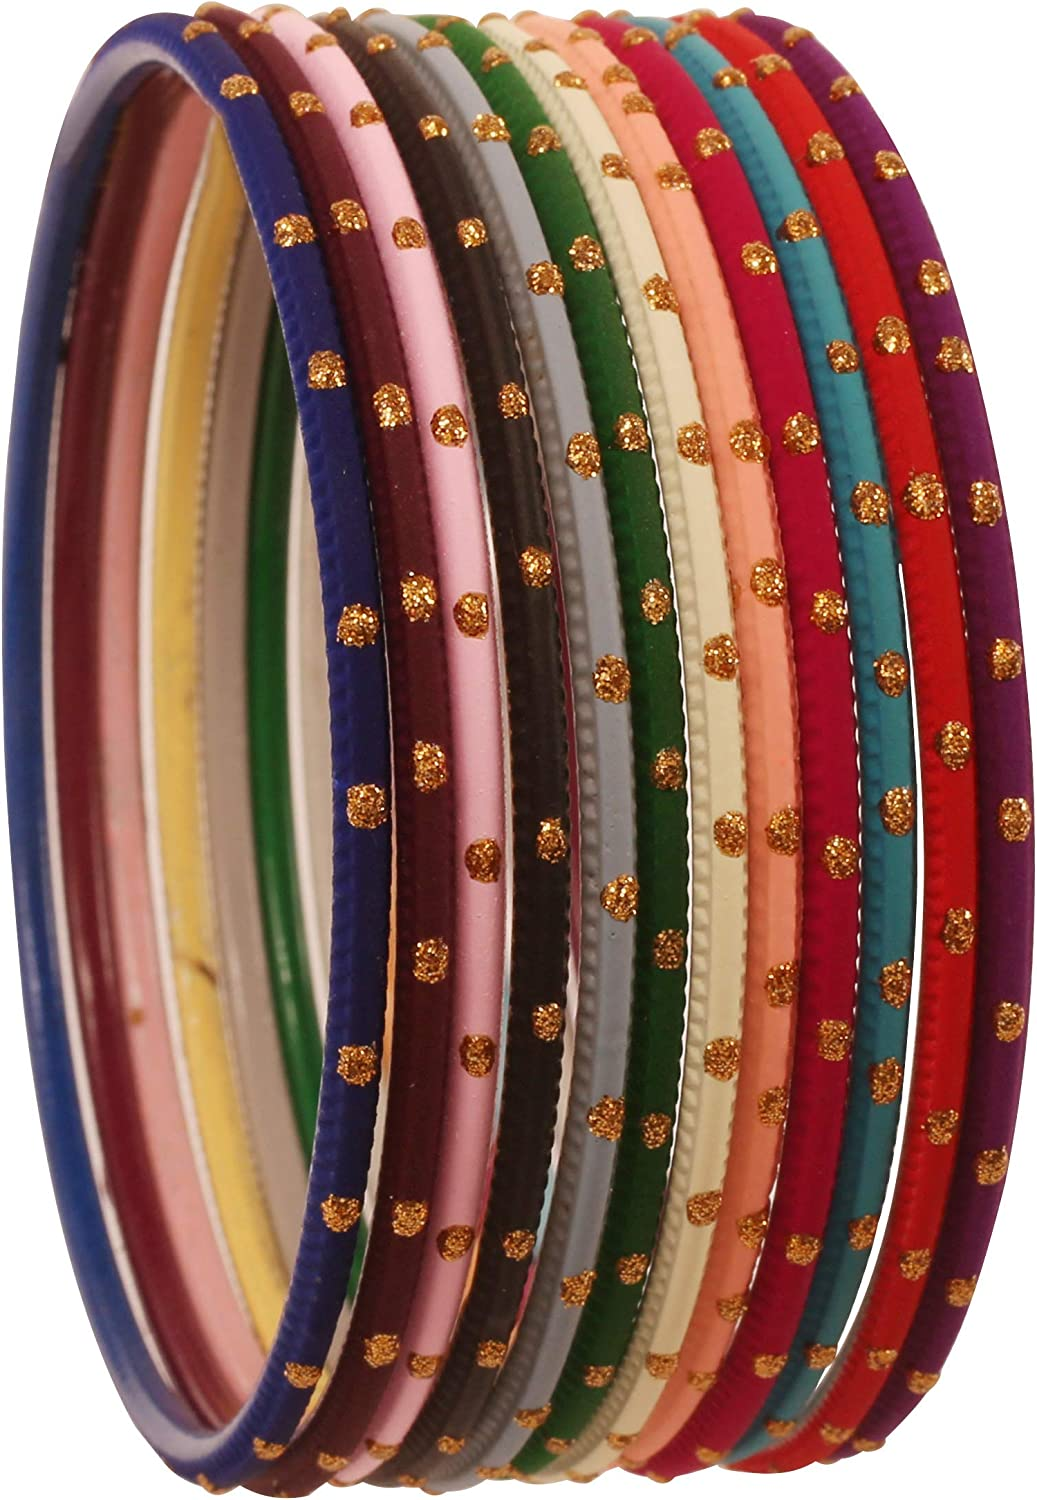 Touchstone Indian Bollywood Fashion Golden Glitters Glossy Matte Textured Vintage Colors Designer Jewelry Bangle Bracelets For Women.